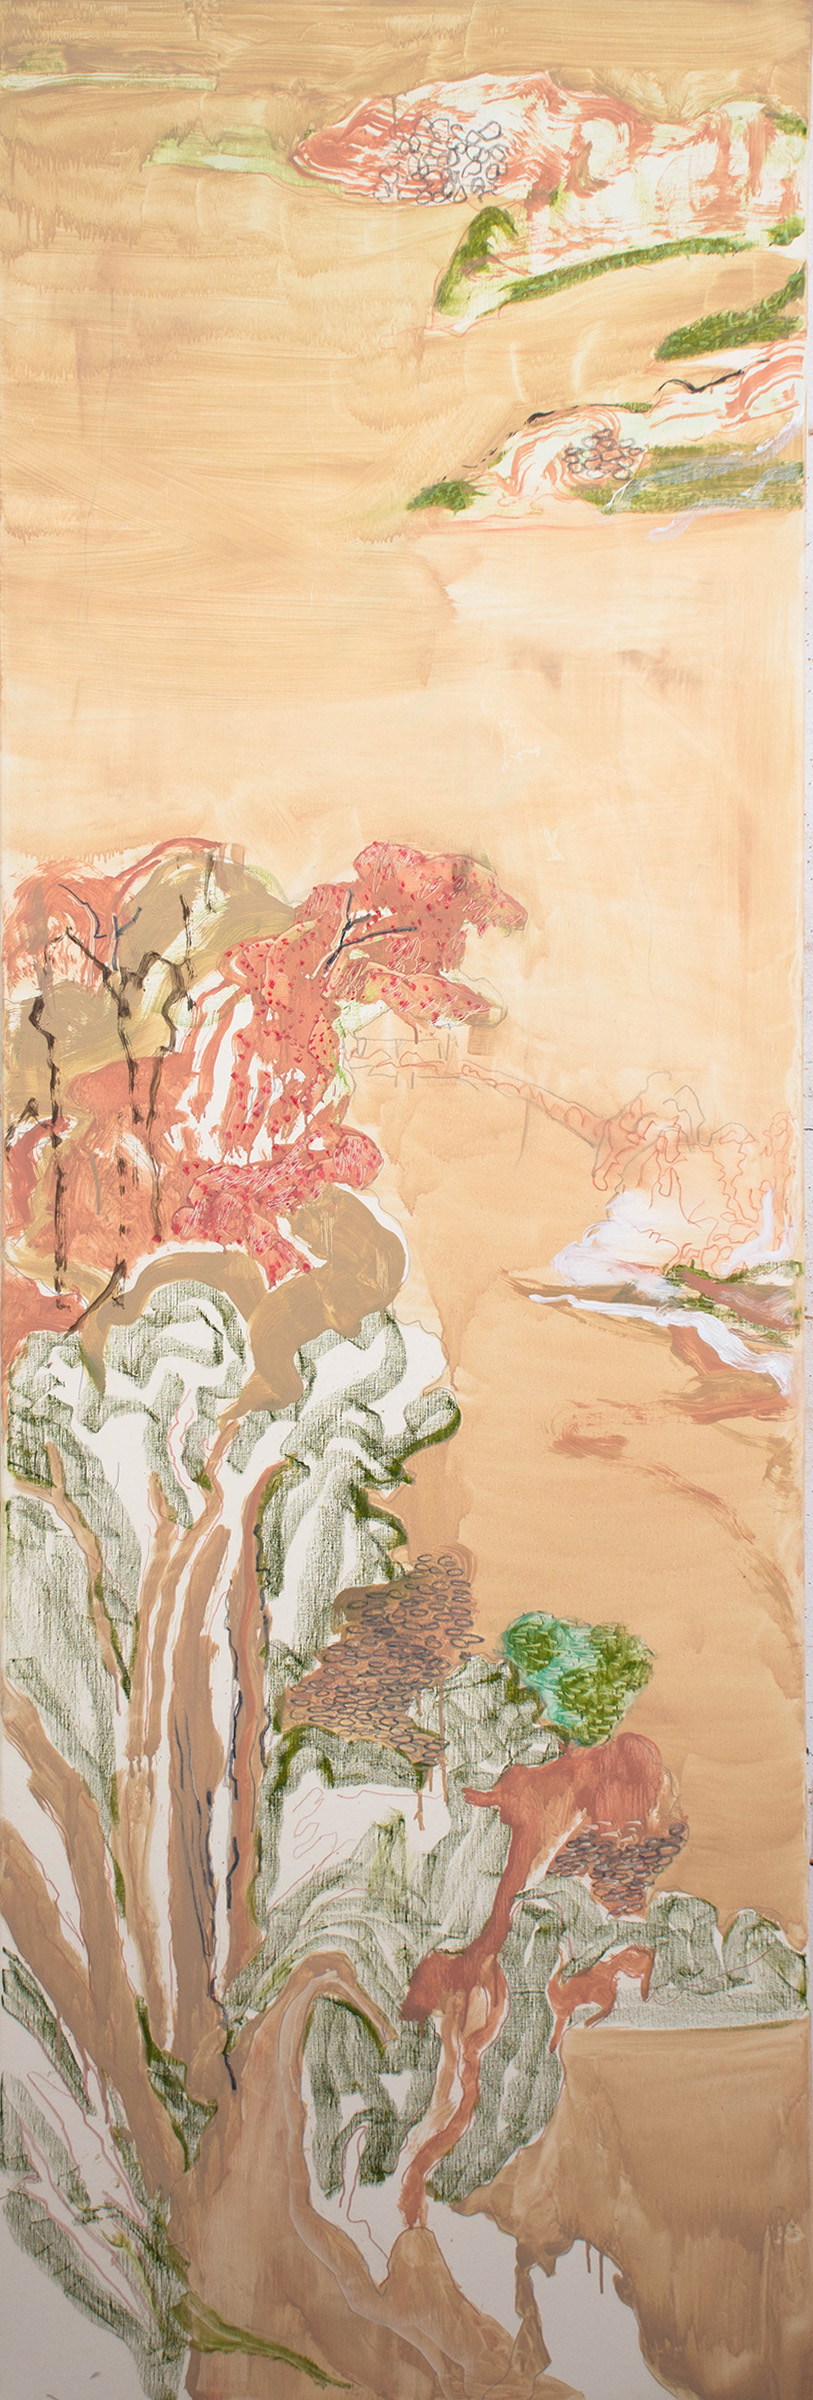 "landscape with pink trees,  78x26"" oil, colored pencil & oil stick on linen, 2019"